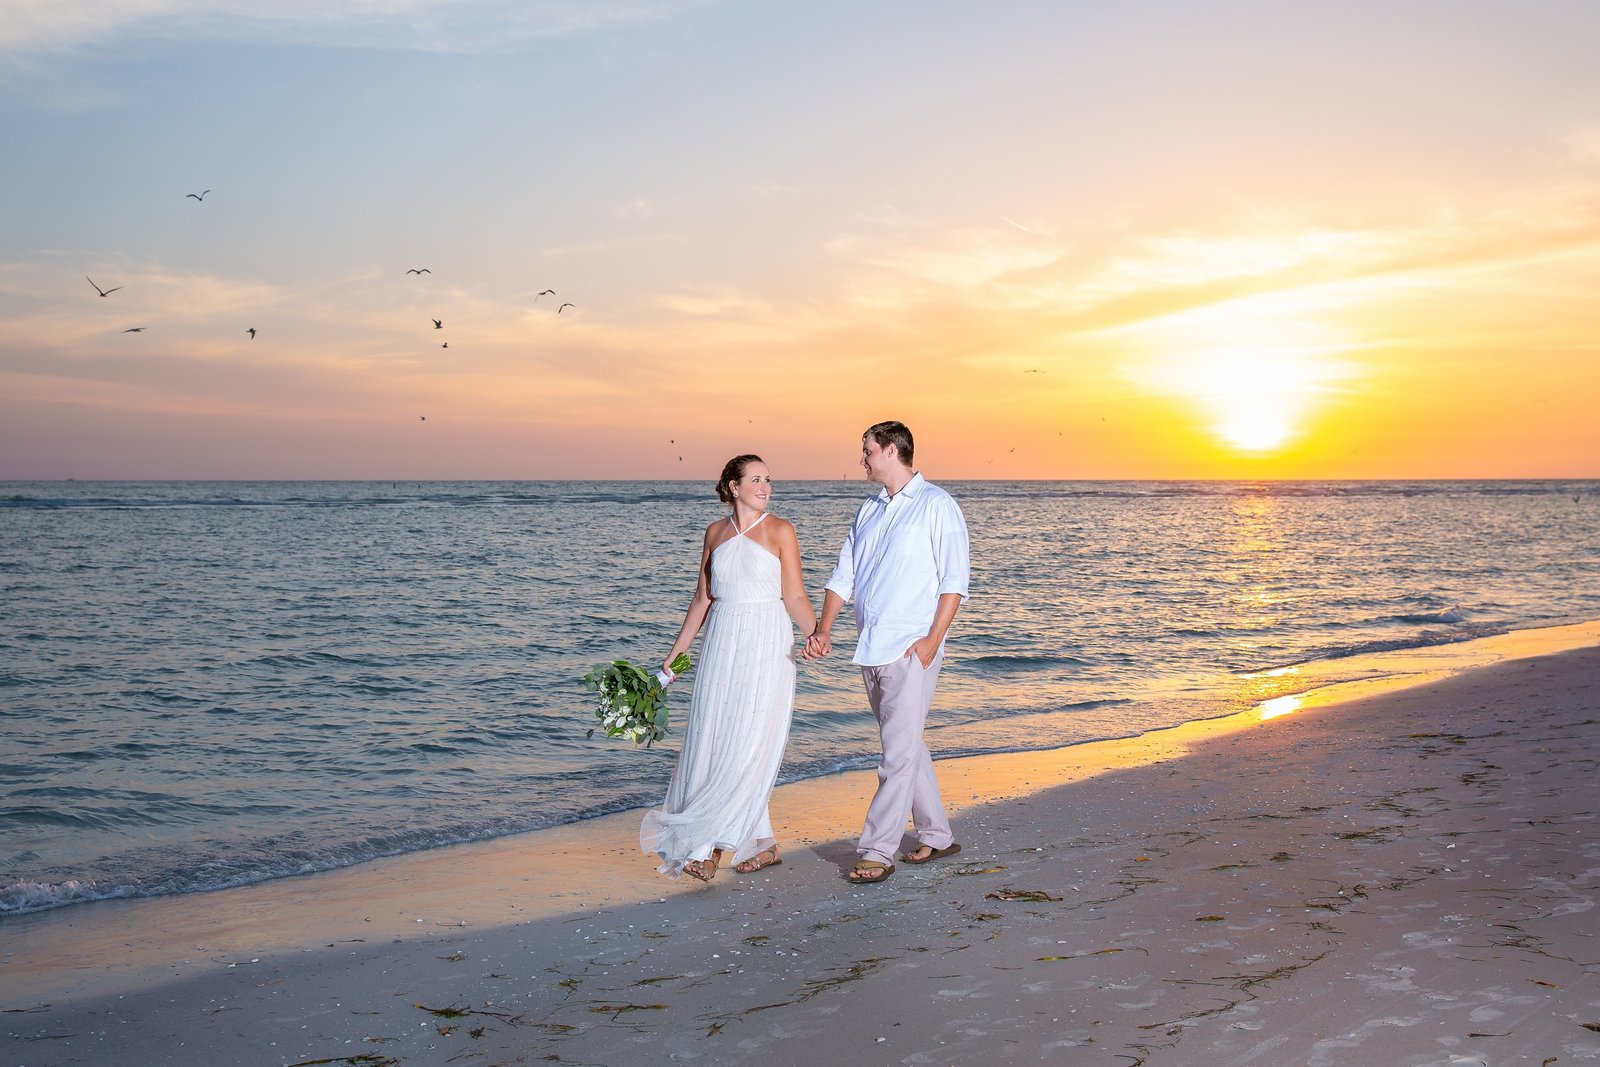 Lido Beach Wedding Photography of bride and groom walking on the beach at sunset